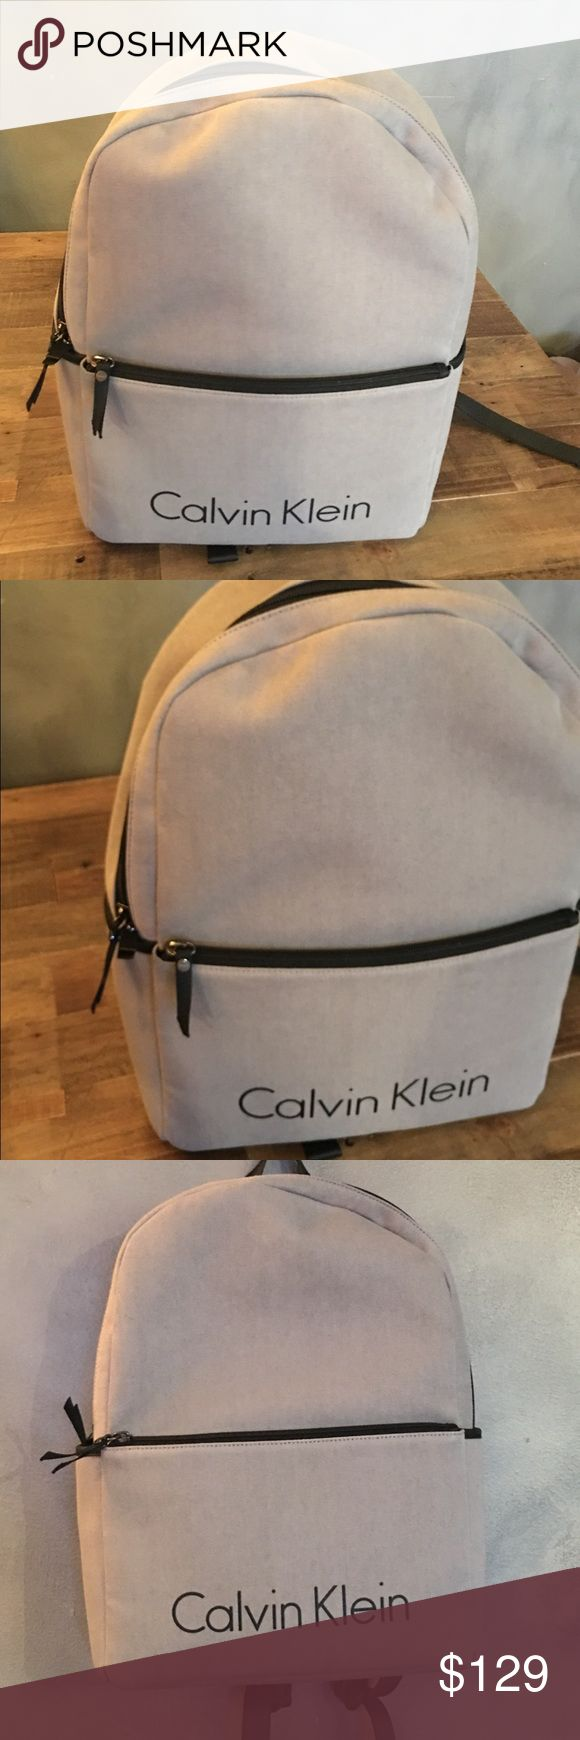 """NWT Calvin Klein man's backpack Stunning , super trendy and stylish backpack by Calvin Klein. New with tag modern backpack designed with a canvas body, faux leather trim, a zip main compartment and inteior storage for a lightweight, on-the-go style. Canvas + faux leather top handle + adjustable shoulder straps zip compartment + front zip pocket side pockets interior open compartment fully lined FABRIC + CARE canvas + faux leather imported FIT + SIZING 16"""" wide x 11.75"""" tall x 5.5"""" deep…"""